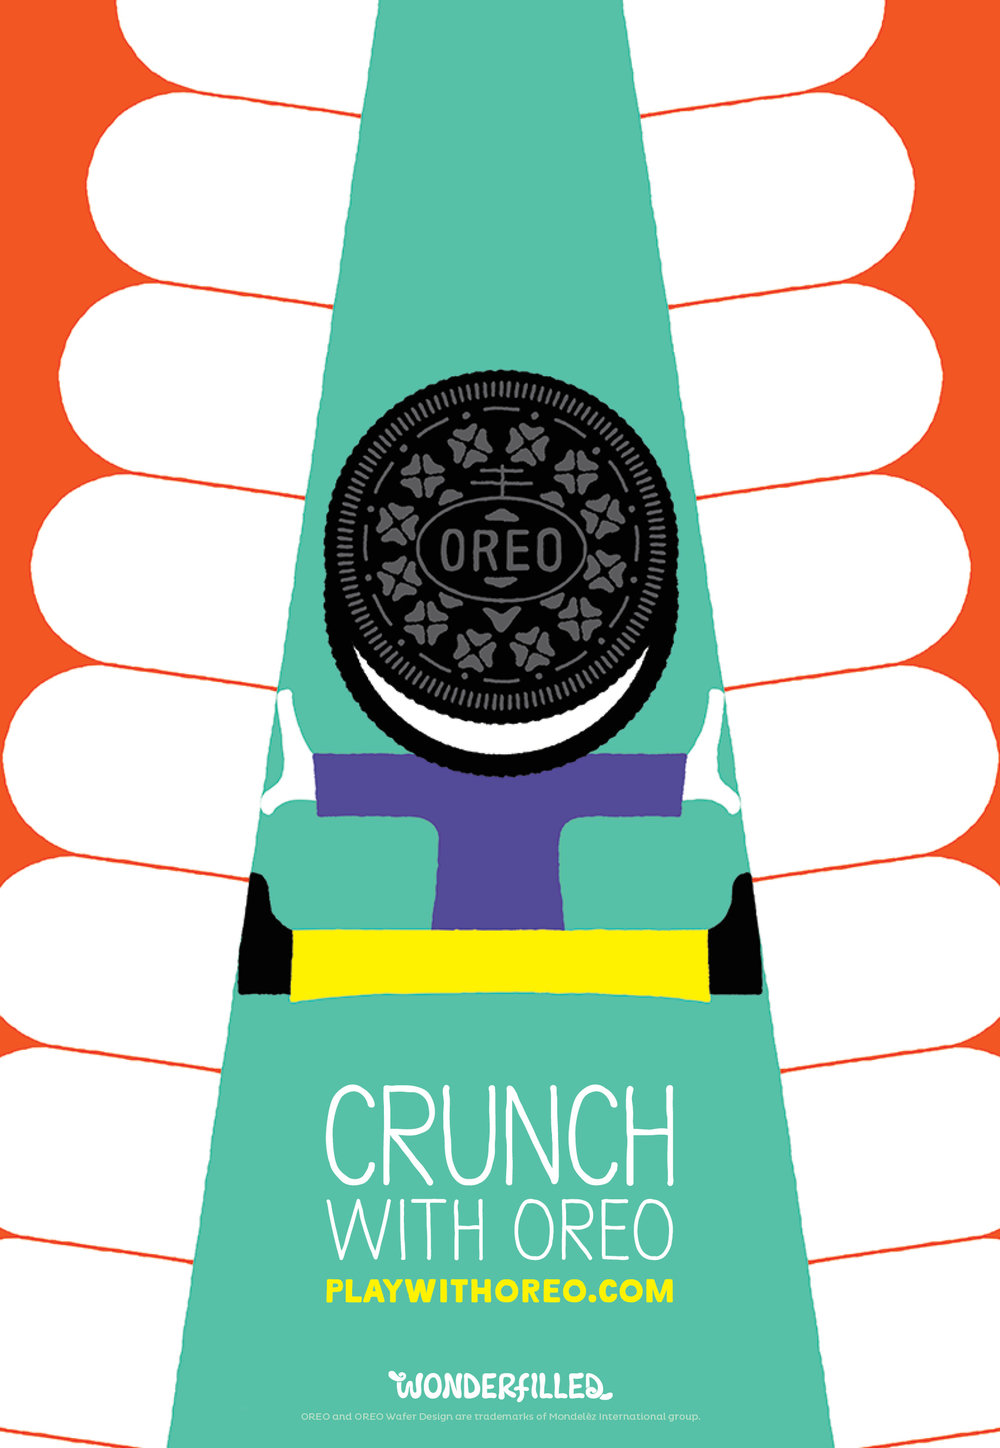 Crunch With Oreo - Ryan Todd